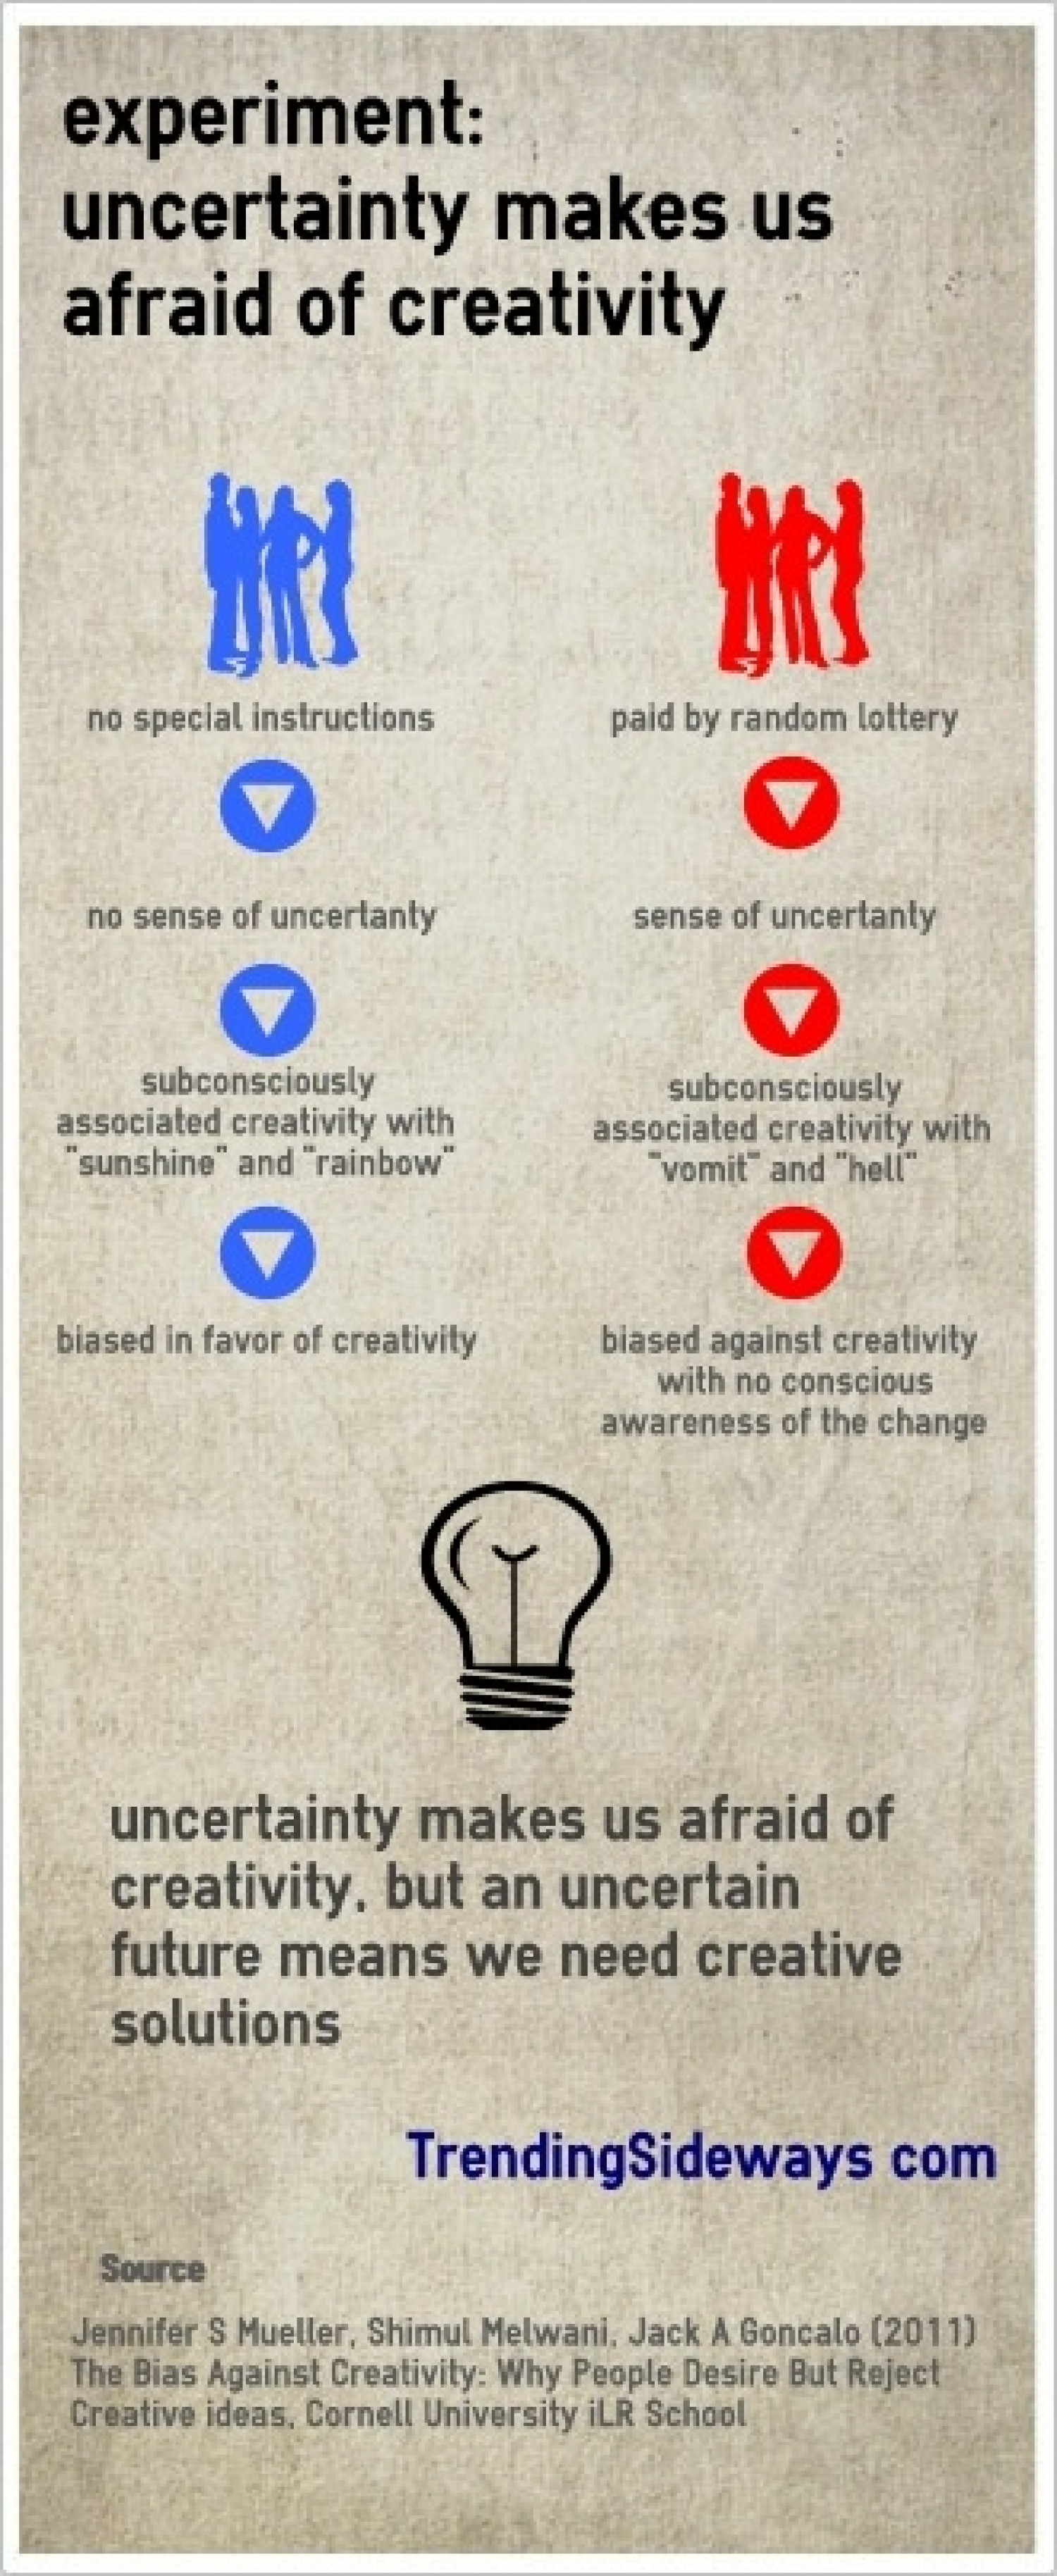 Afraid of creativity Infographic